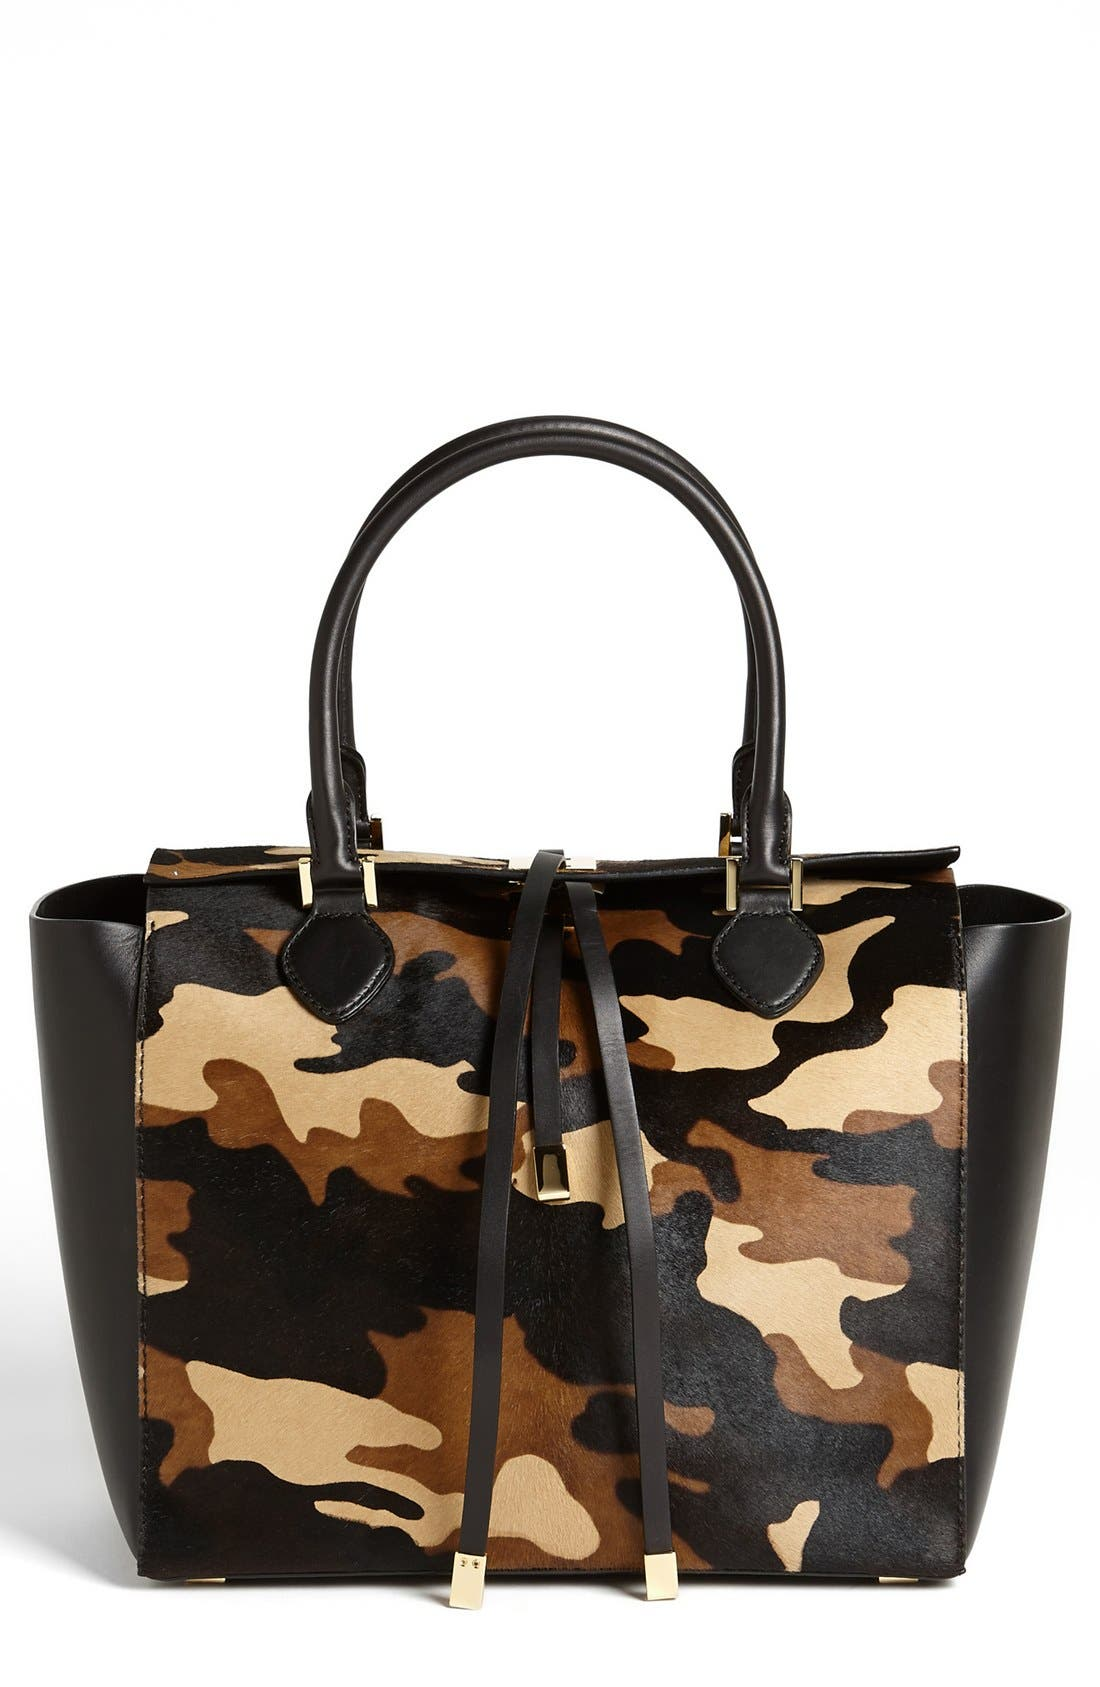 Main Image - Michael Kors 'Miranda' Calf Hair & Leather Tote